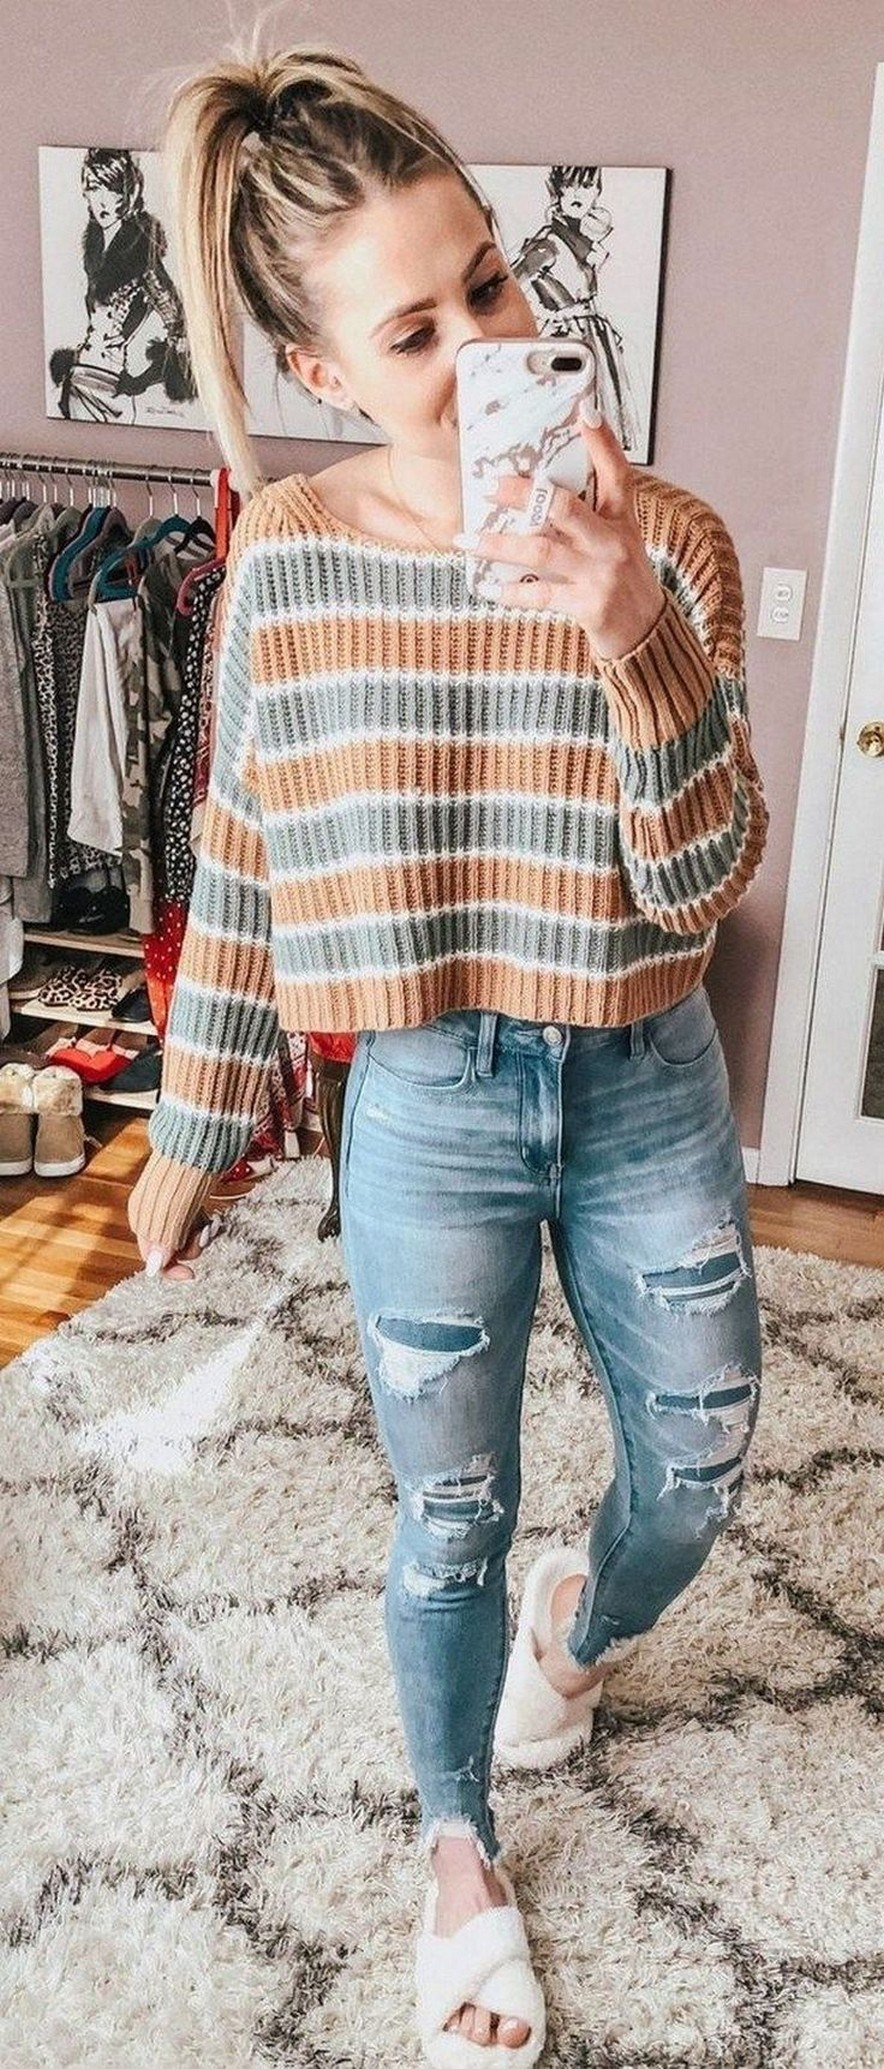 29+ basic outfit ideas every women should know for winter 4